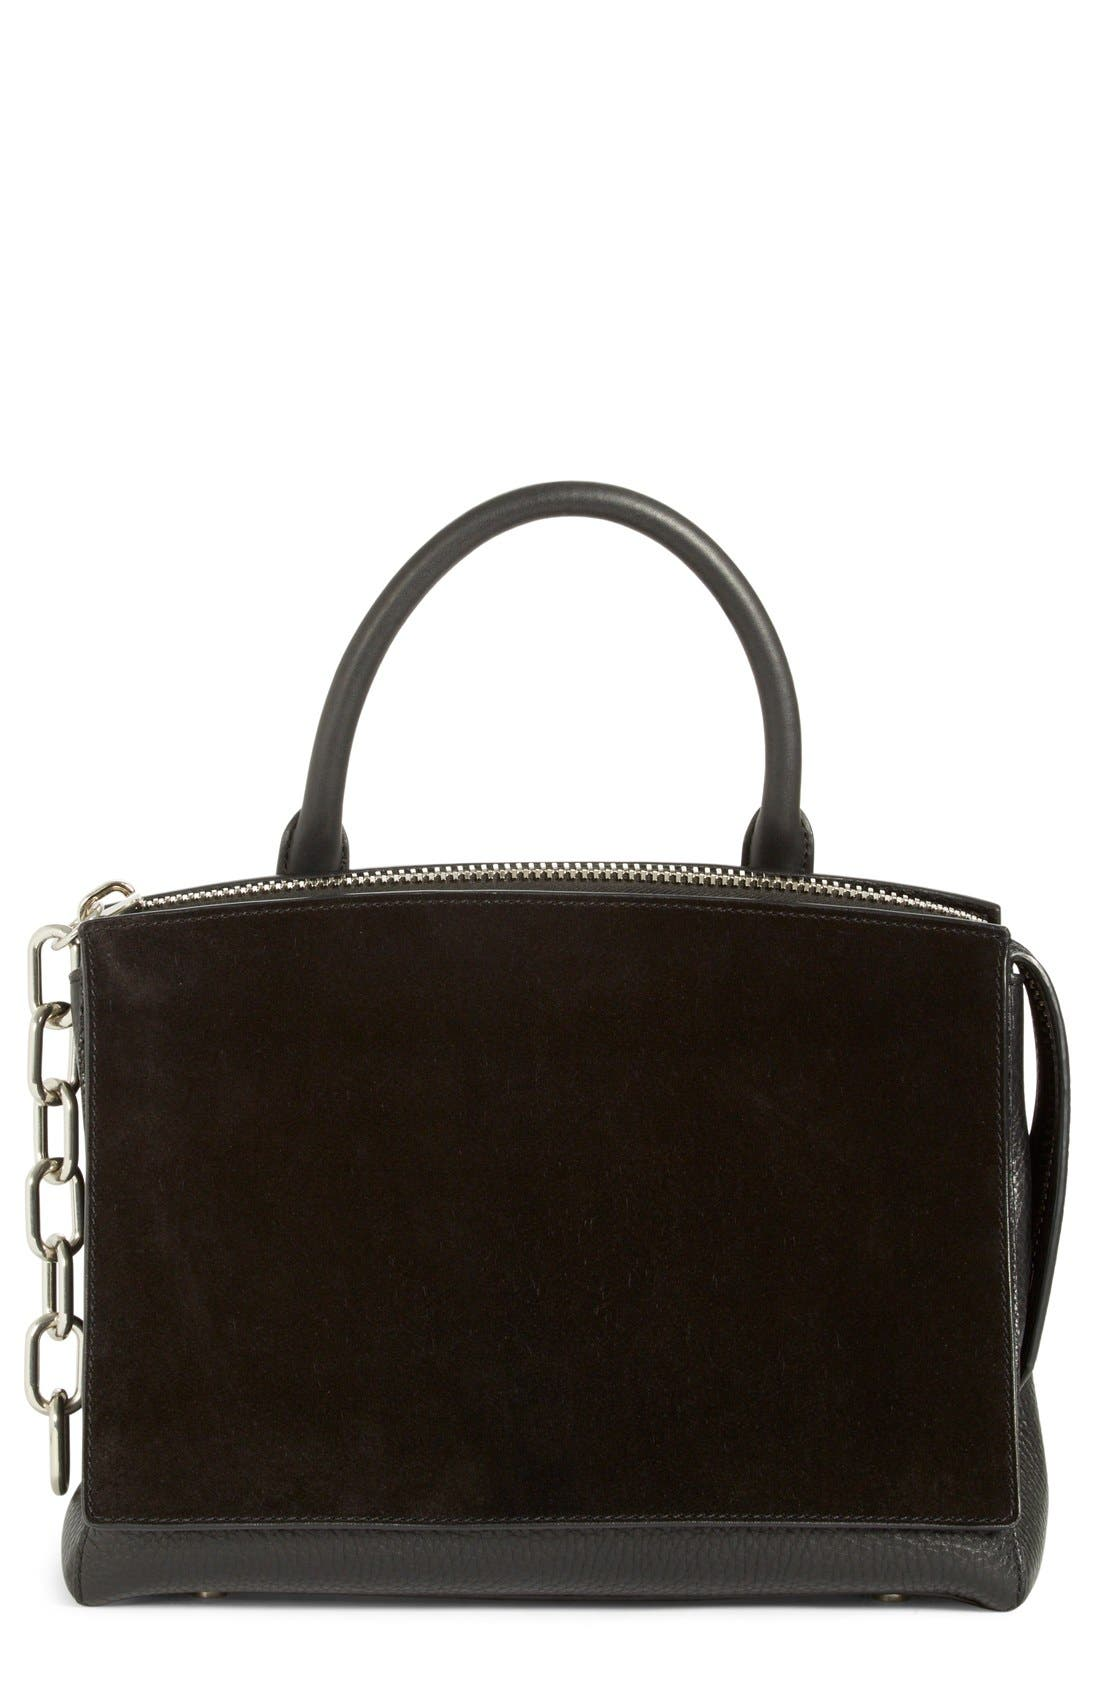 ALEXANDER WANG 'Attica' Leather & Suede Tote